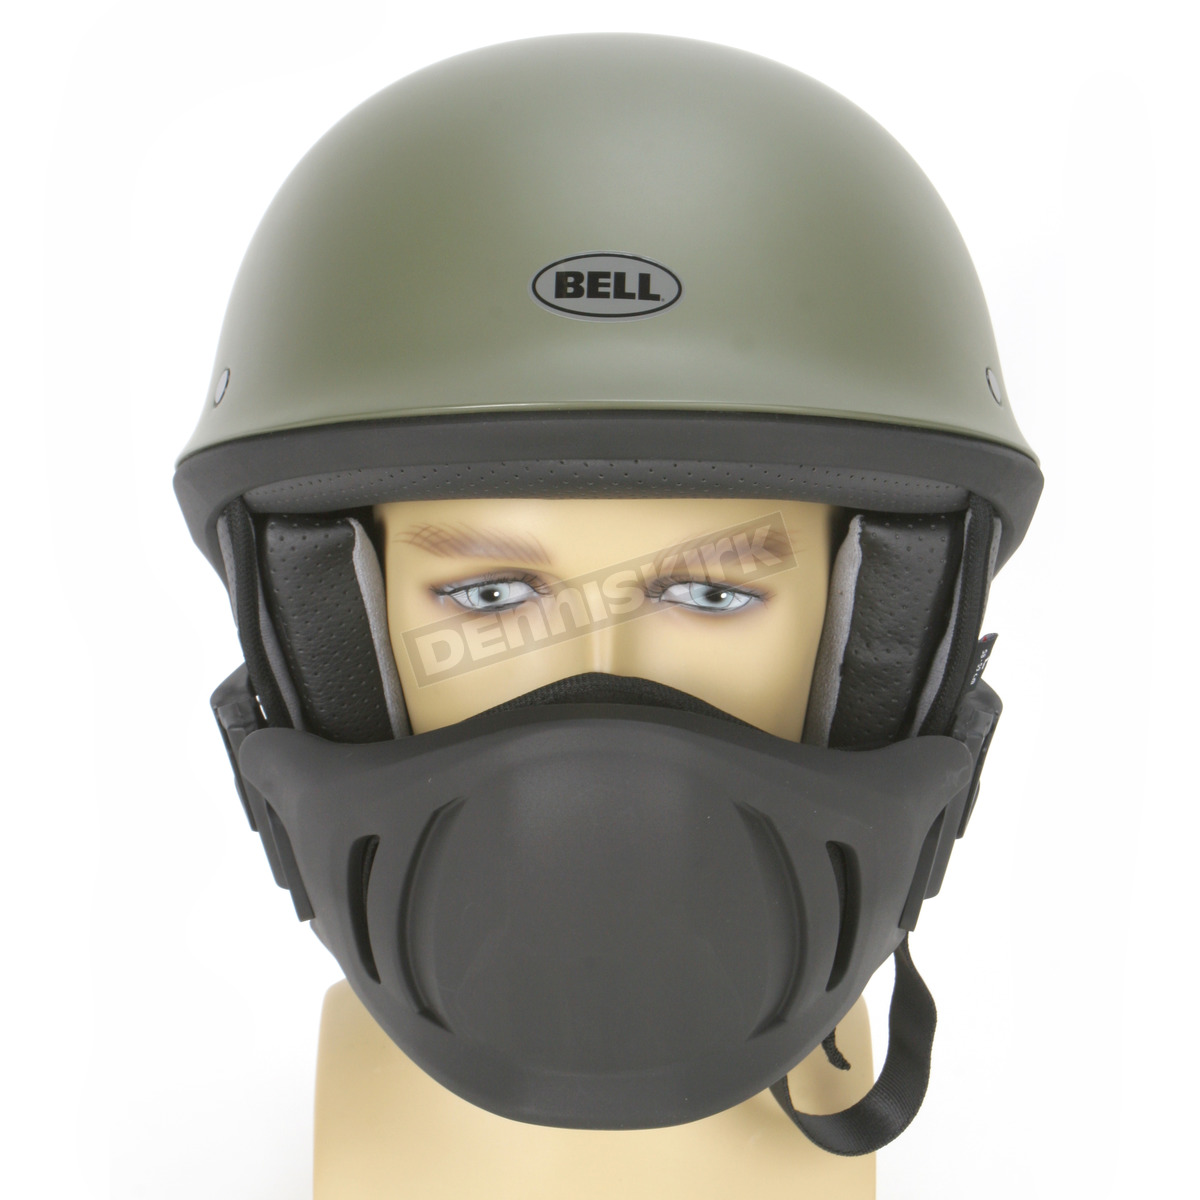 ... helmets see harley davidson products see cruiser motorcycle products